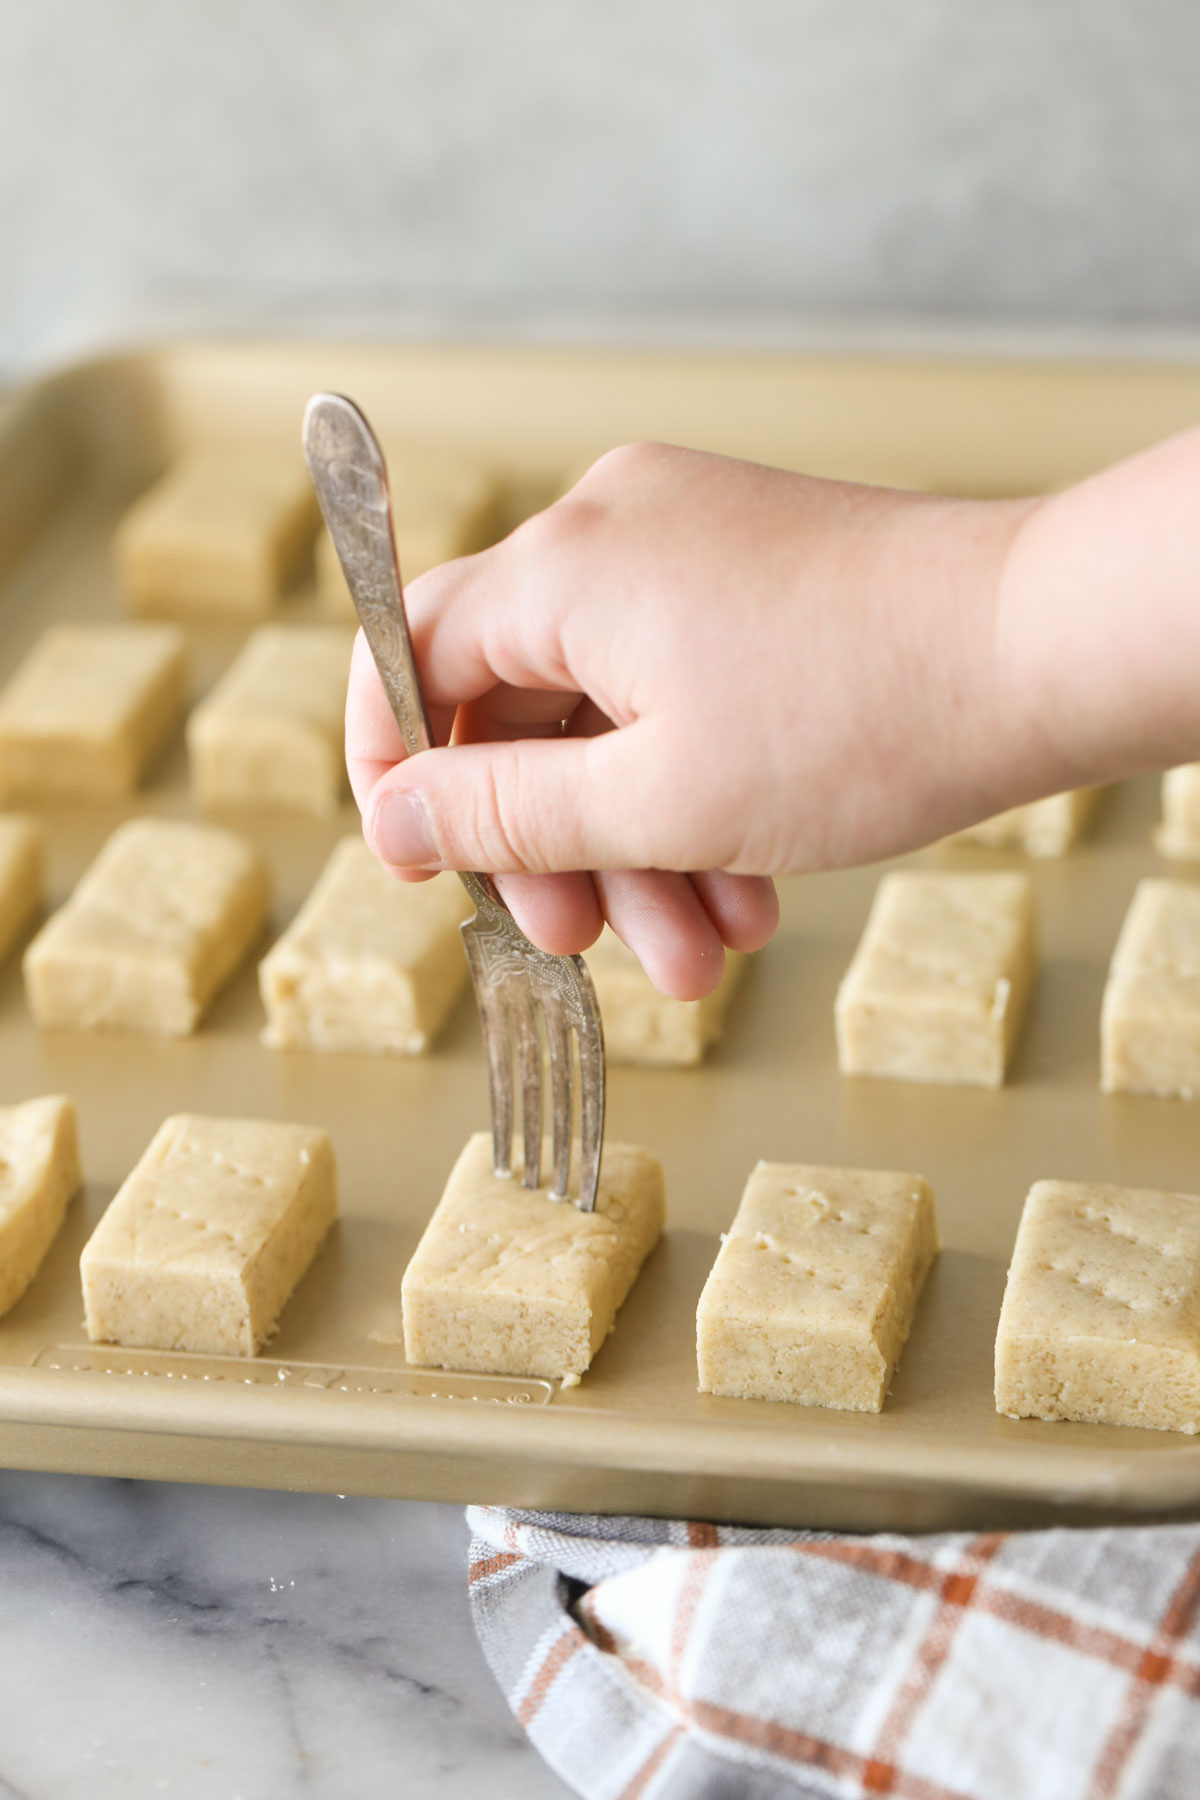 Buttery Shortbread Cookie dough rectangles arranged on a baking sheet, with a hand using a fork to poke the top of the dough.